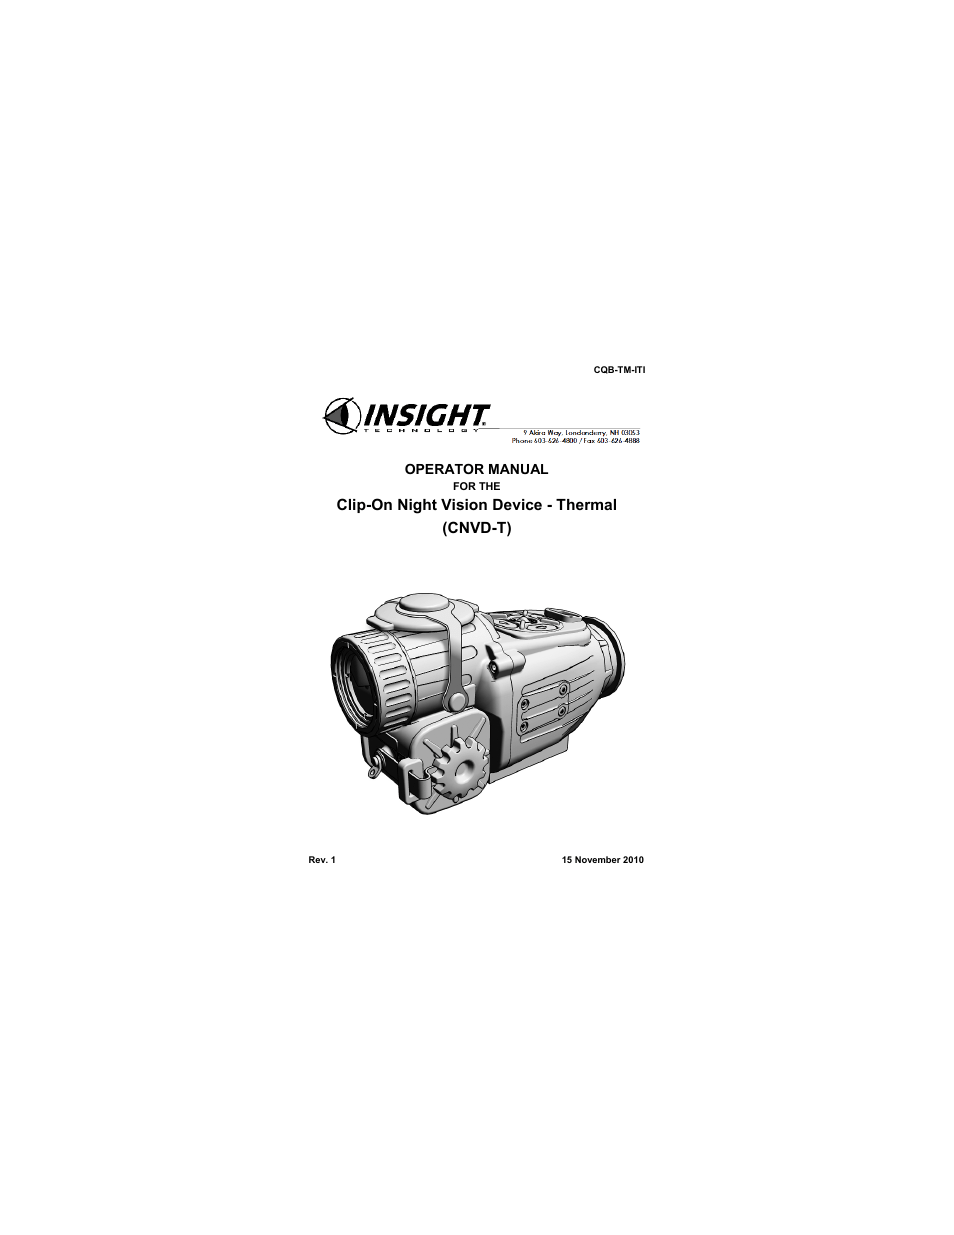 EOTech CNVD-T (SU-232/PAS) Clip-On Night Vision Device